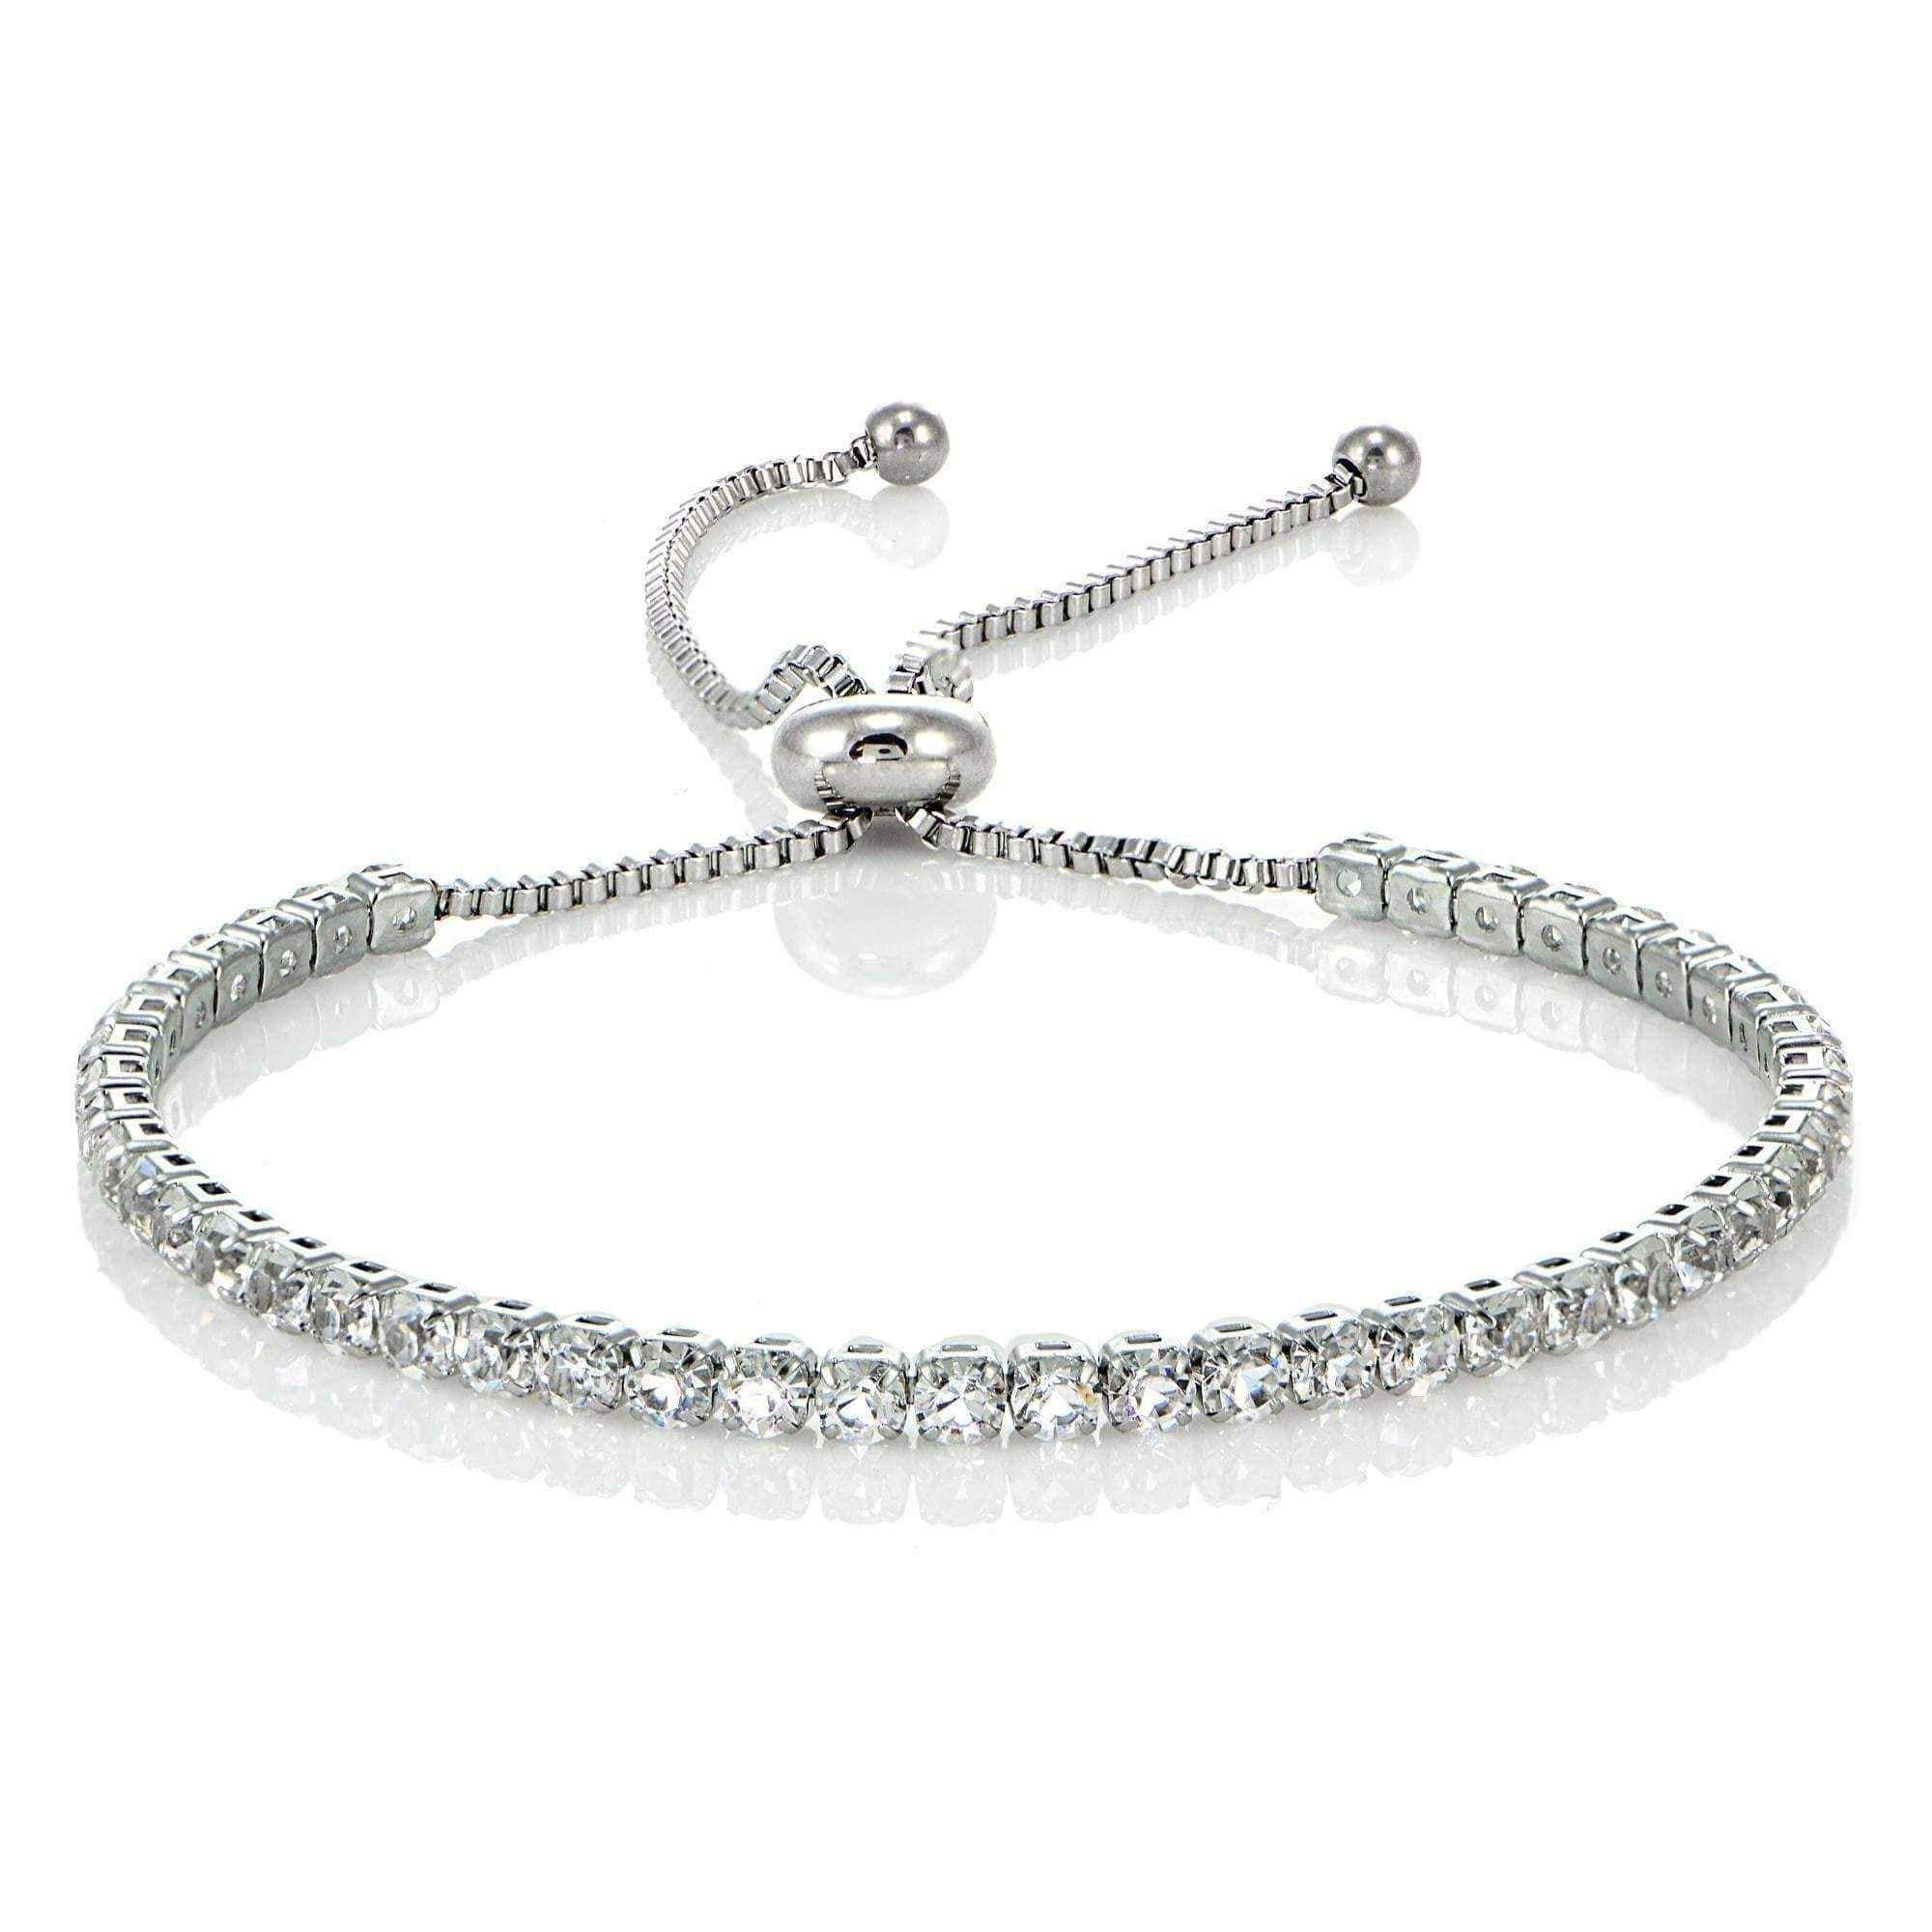 infinity slider palmbeach products charm cross cfm horizontal in pave silver bracelet tcw jewelry cubic detail zirconia at adjustable sterling heart